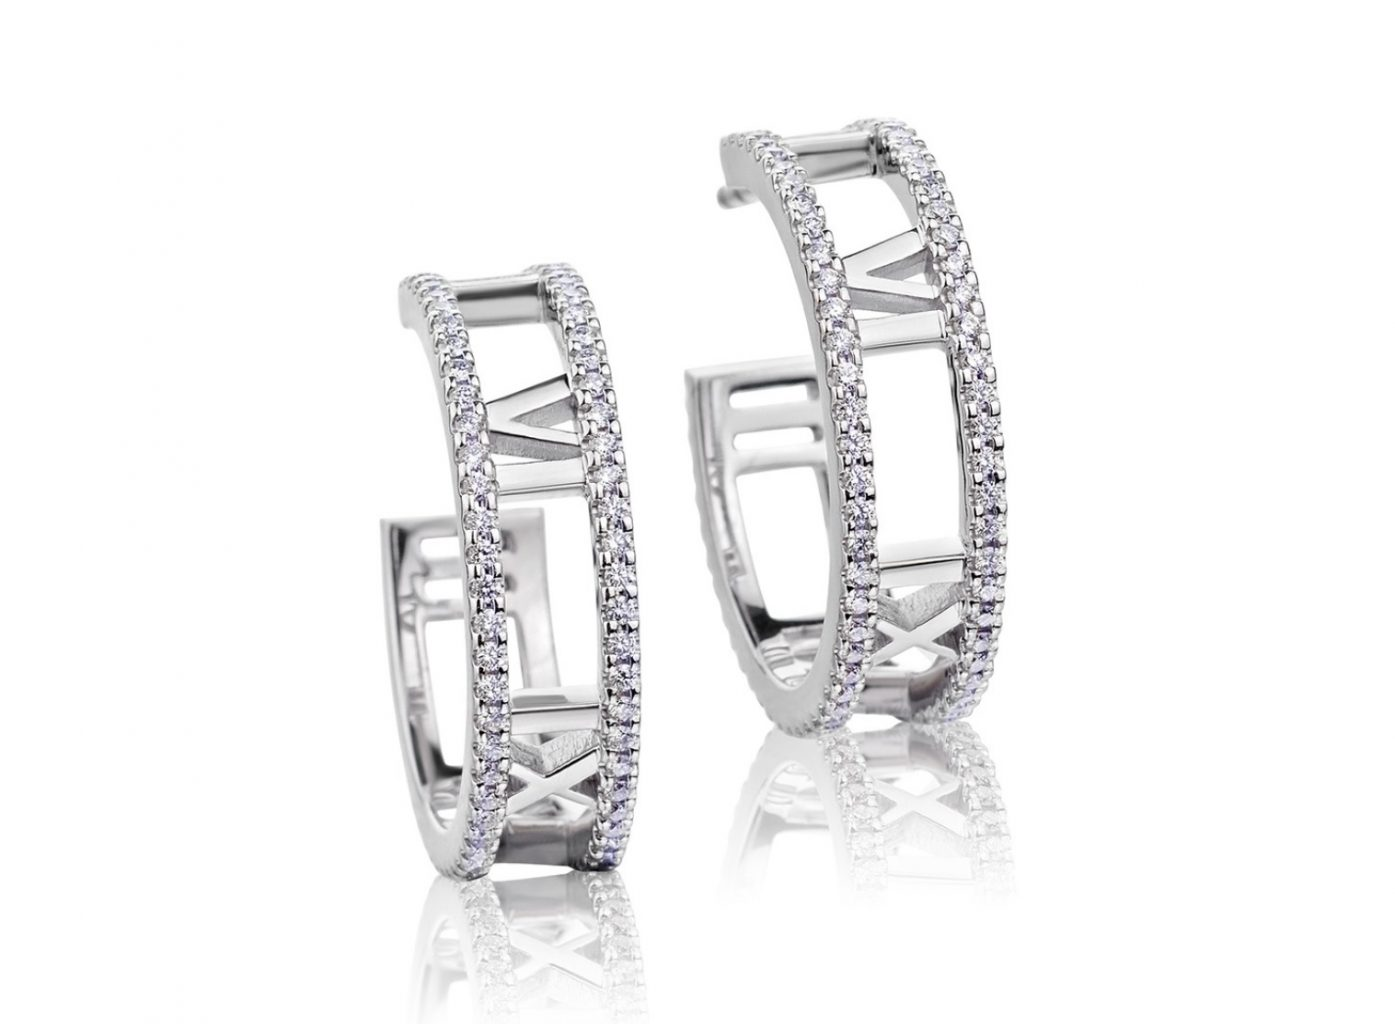 c3c0b0716 Tiffany & Co. 18K White Gold Atlas Diamond Hoop Earrings - Top Rate ...